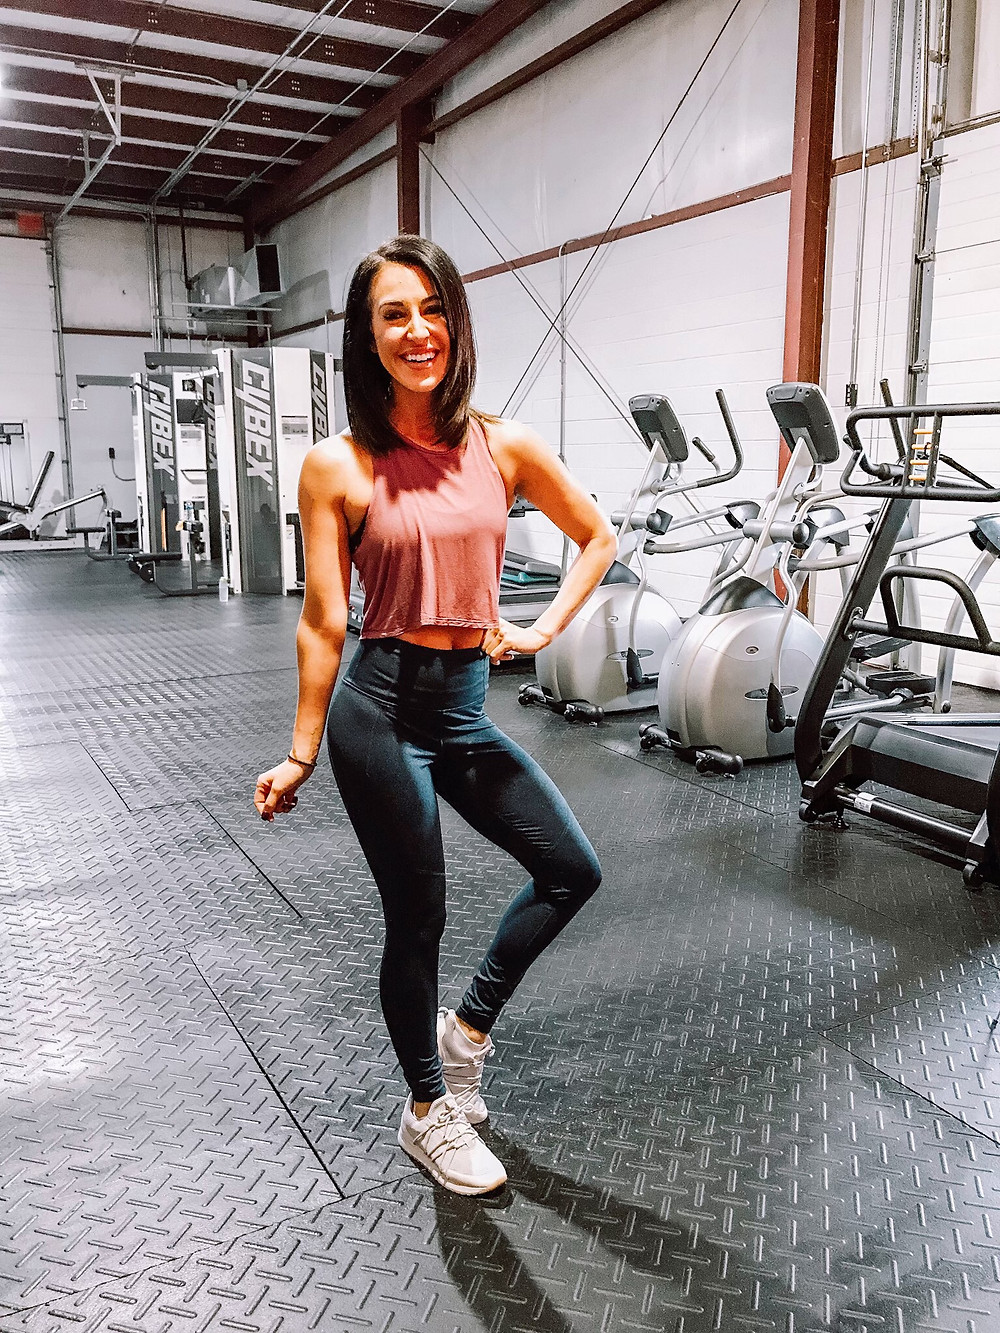 personal training, workout facility, gym, nutrition, weightlifting